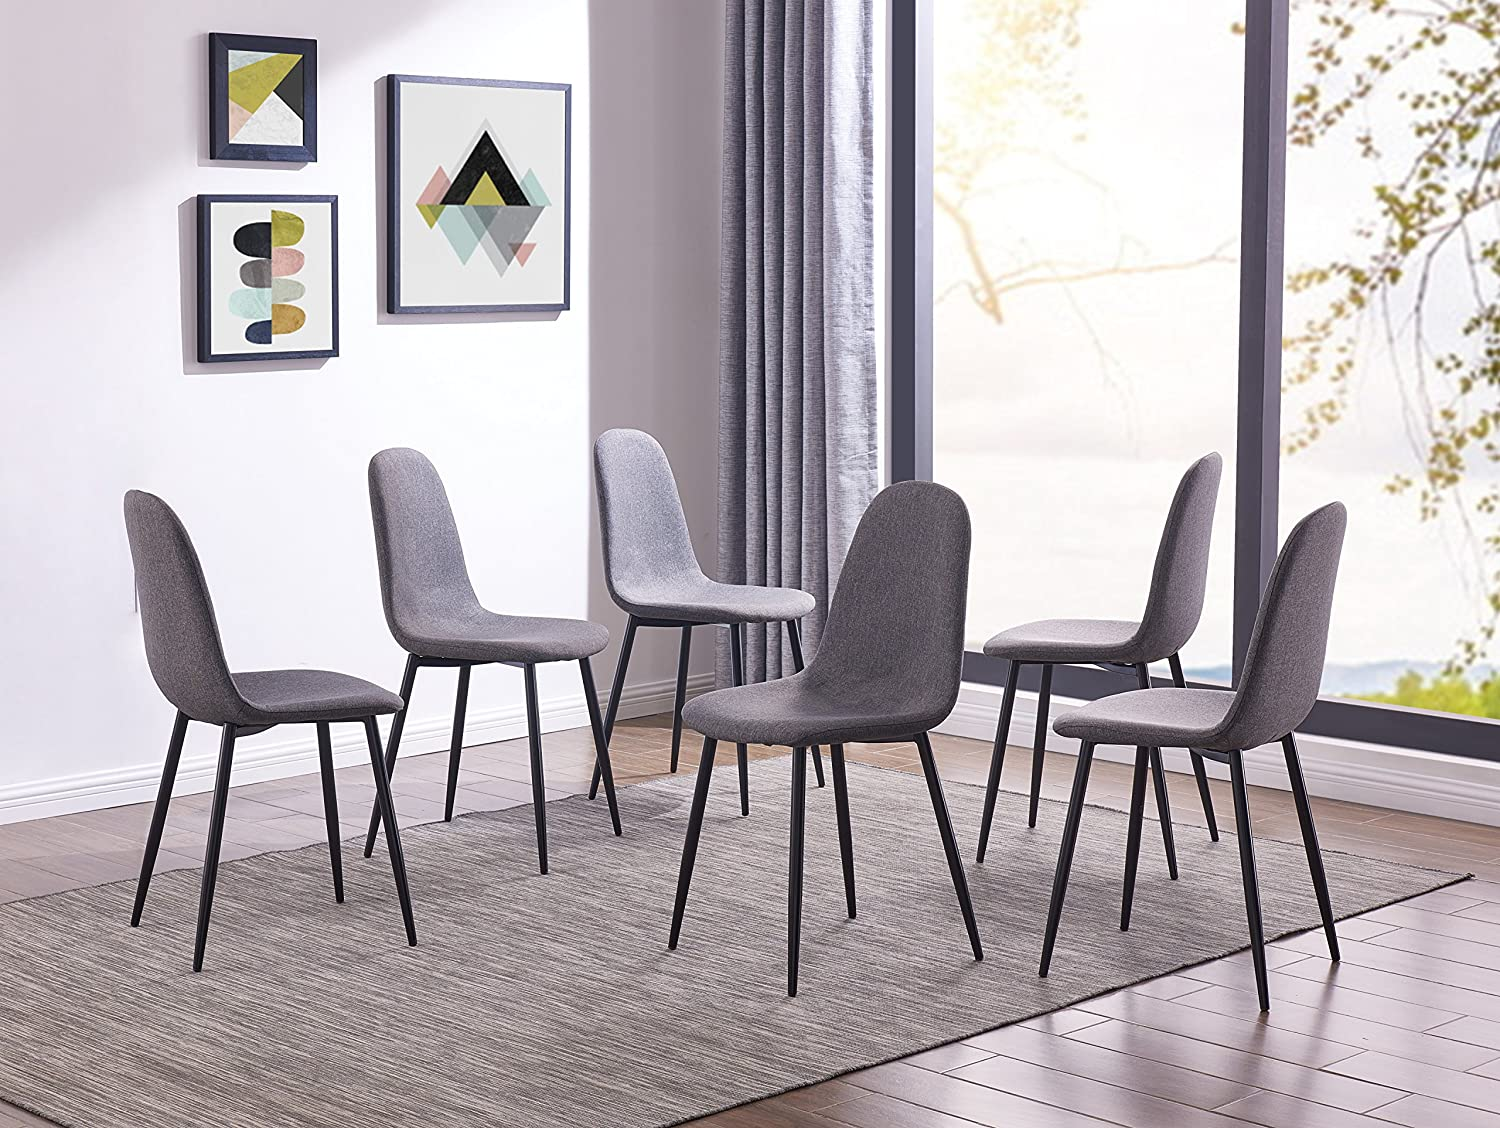 IDS Eames Style Dining Chairs Fabric Cushion Seat Side Chair Armless Living Room Chairs Set of 6 Grey